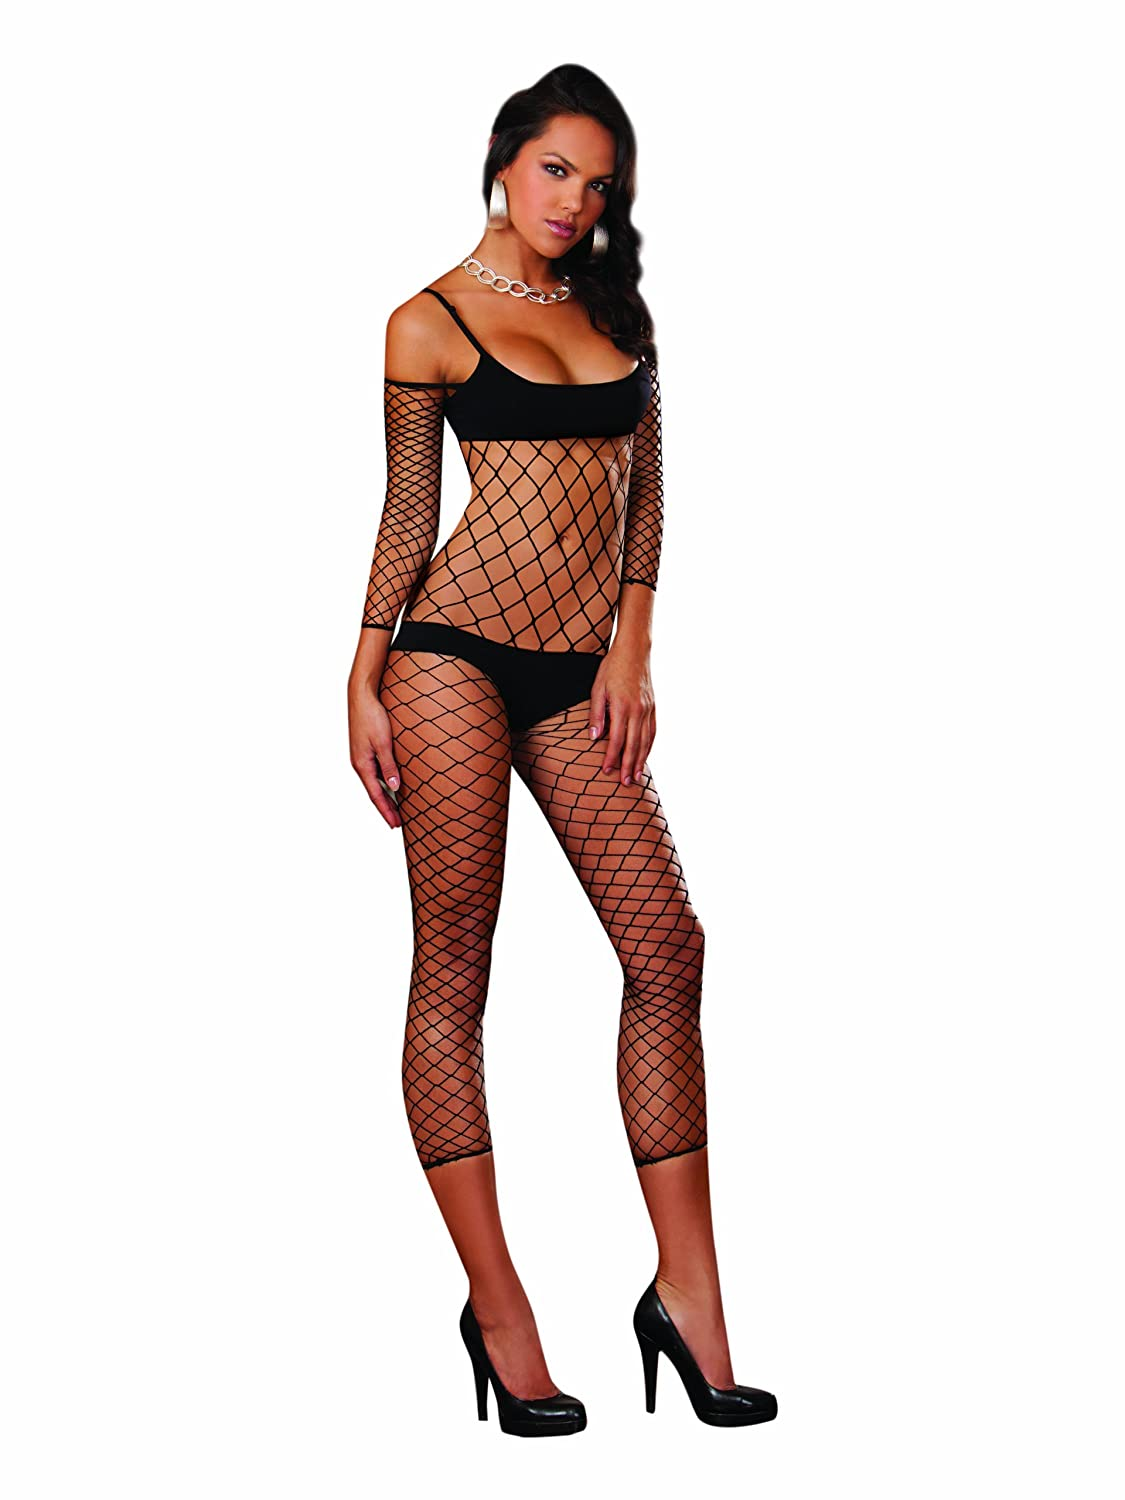 e05b956952 Dreamgirl Women s Rio De Janeiro Fence Net Bodystocking - Black -   Amazon.co.uk  Clothing